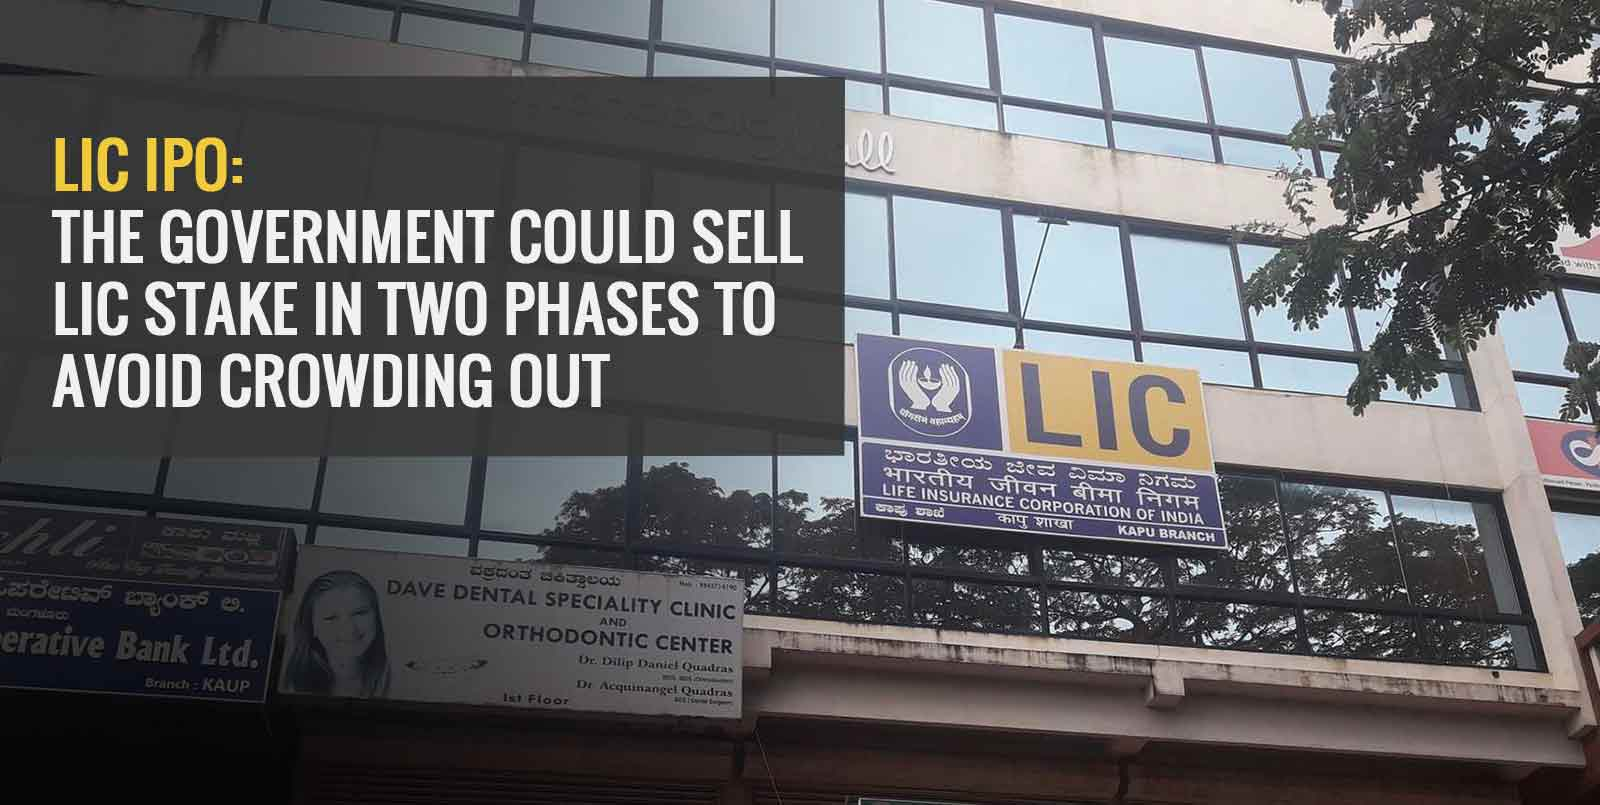 LIC IPO: The Government Could Sell LIC Stake in Two Phases to Avoid Crowding Out